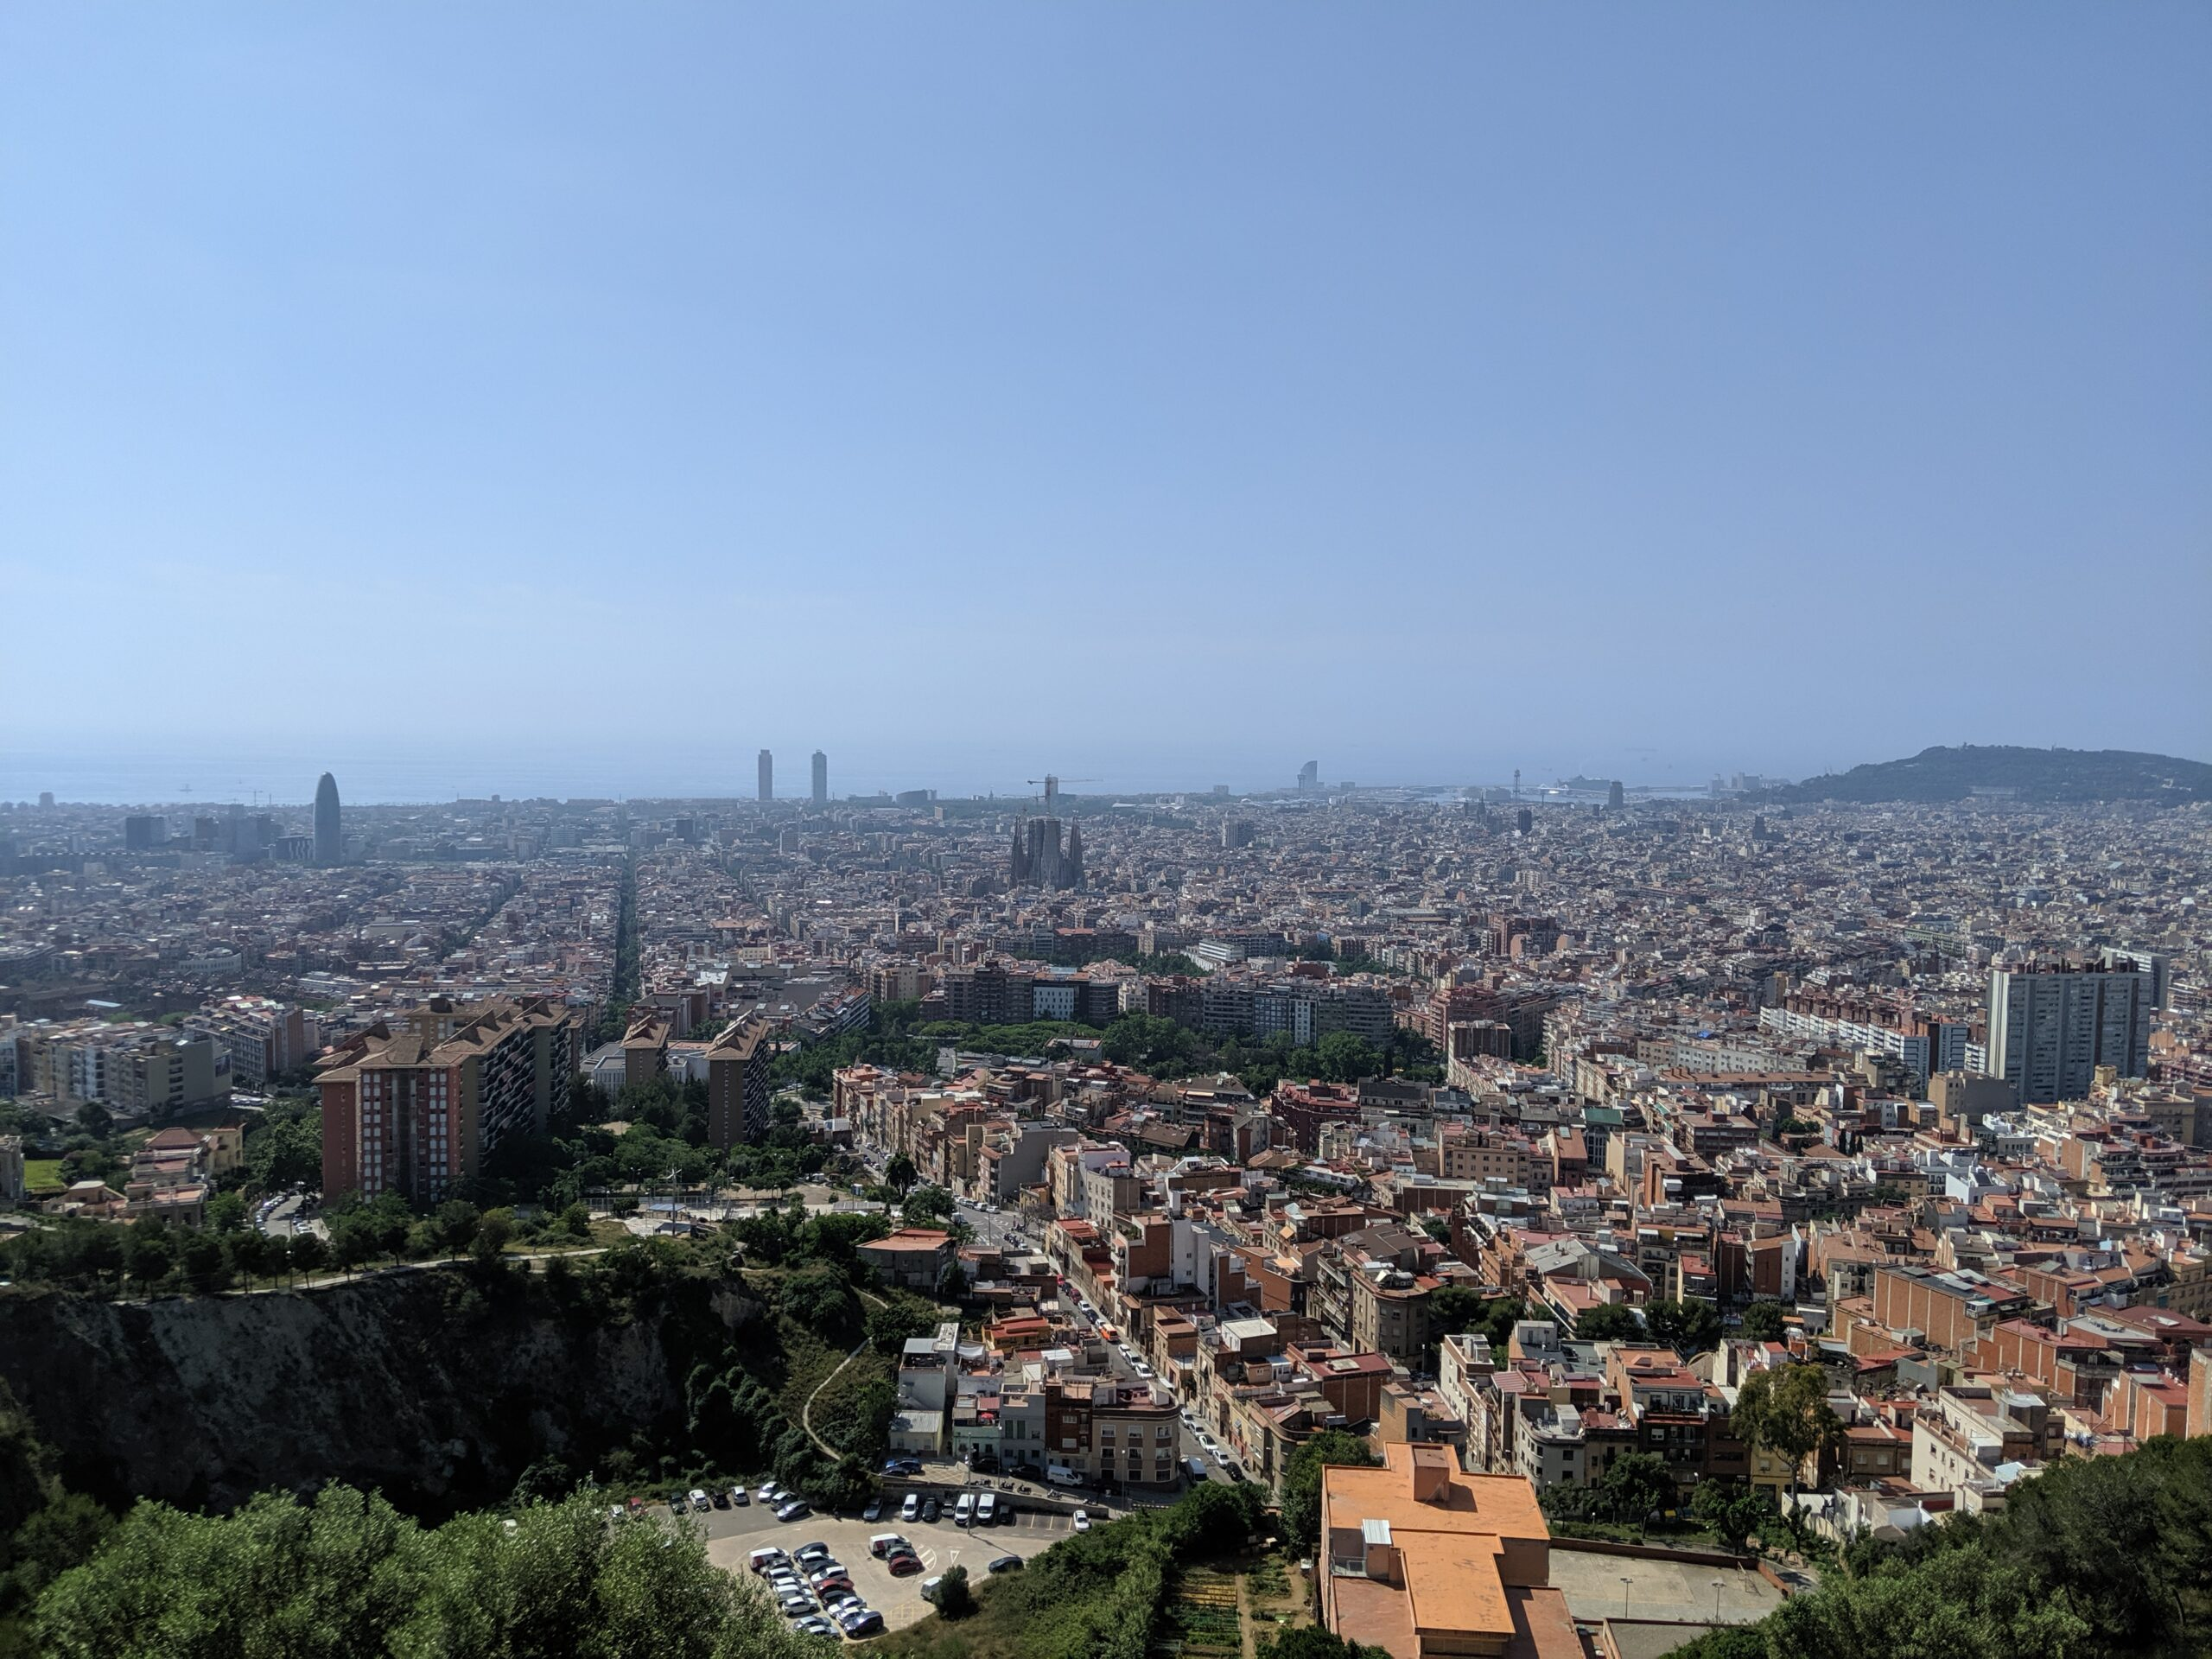 Overview of Barcelona from a high point